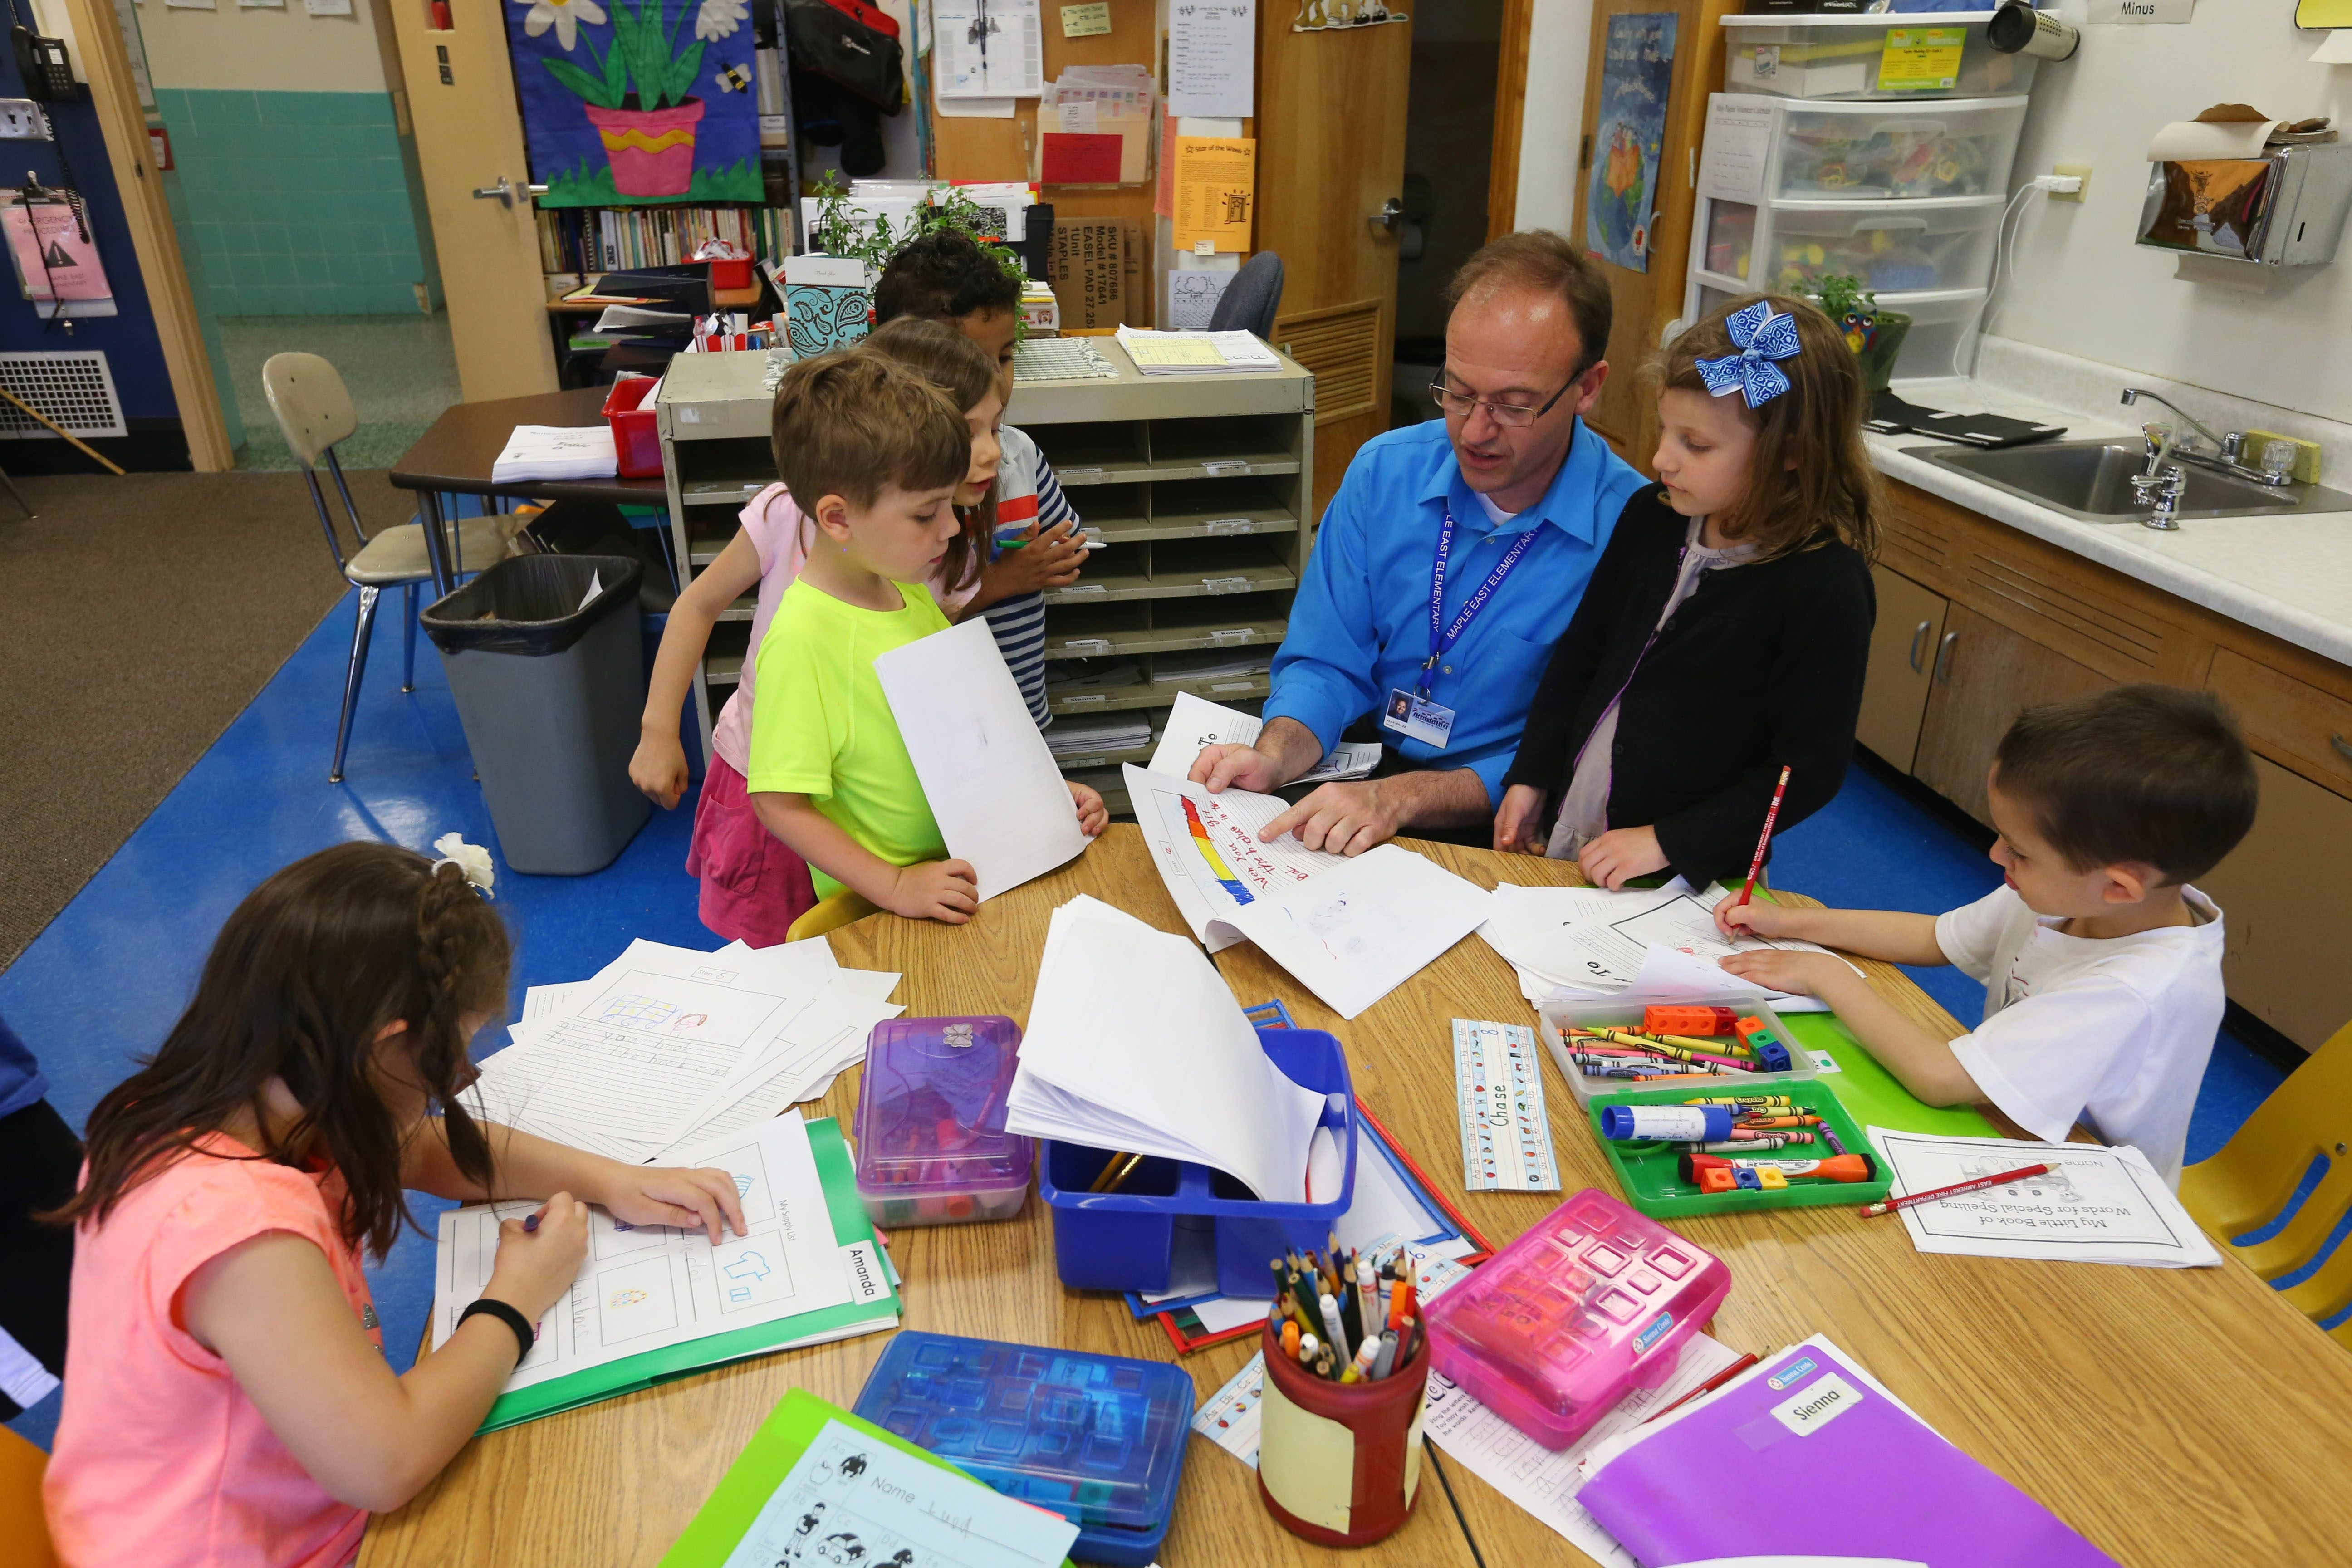 Kindergartners work on a project with teacher Alan Miller at Maple East Elementary in the Williamsville School District. (Mark Mulville/Buffalo News)